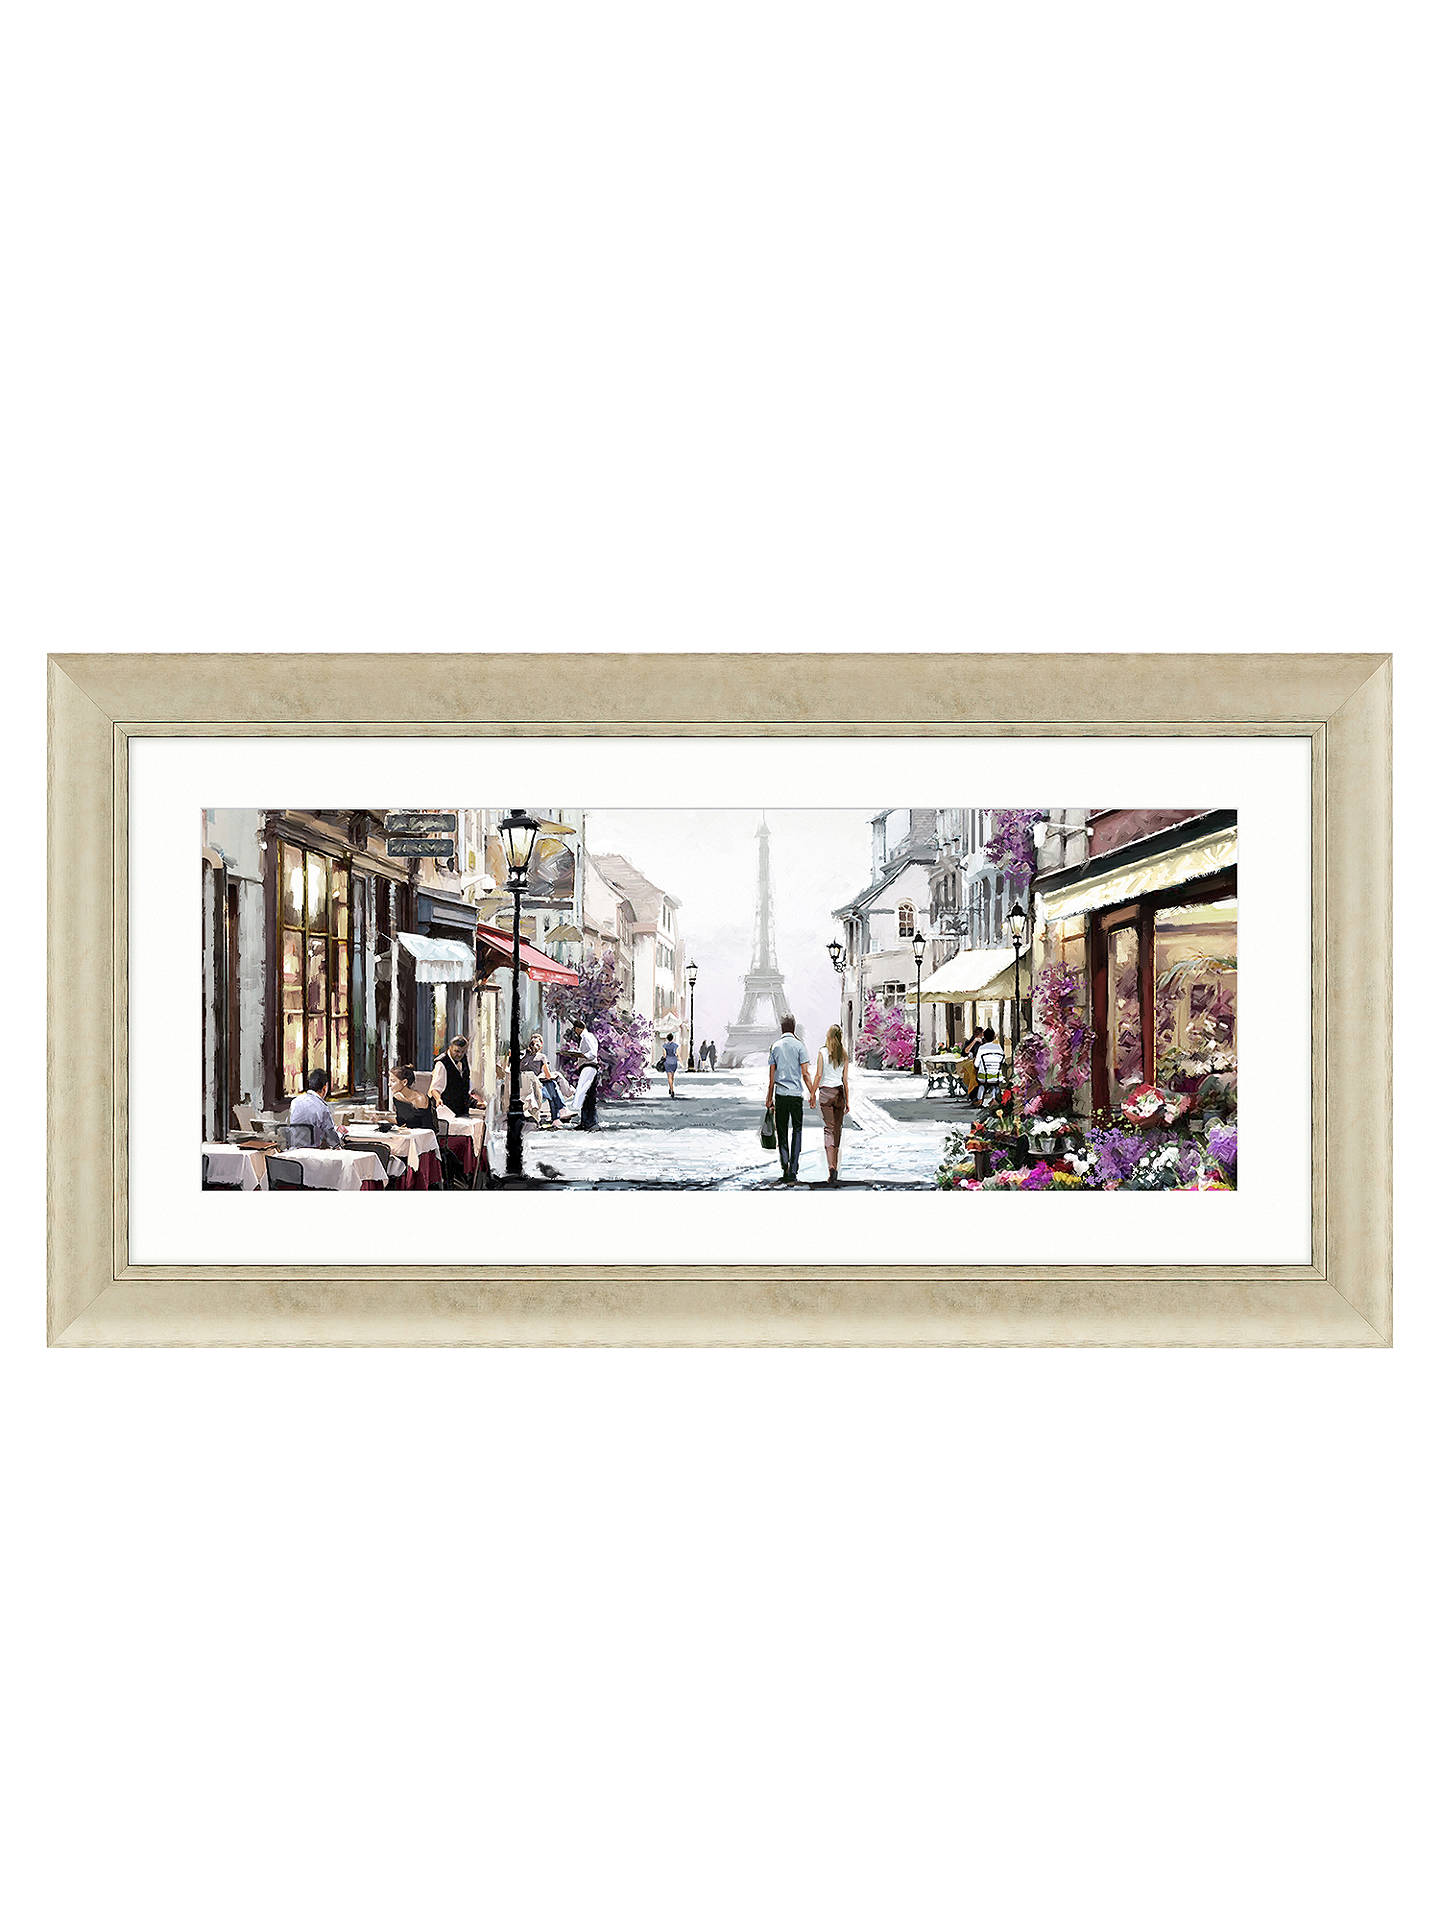 BuyRichard Macneil - Paris Cafe Framed Print,112 x 57cm Online at johnlewis.com